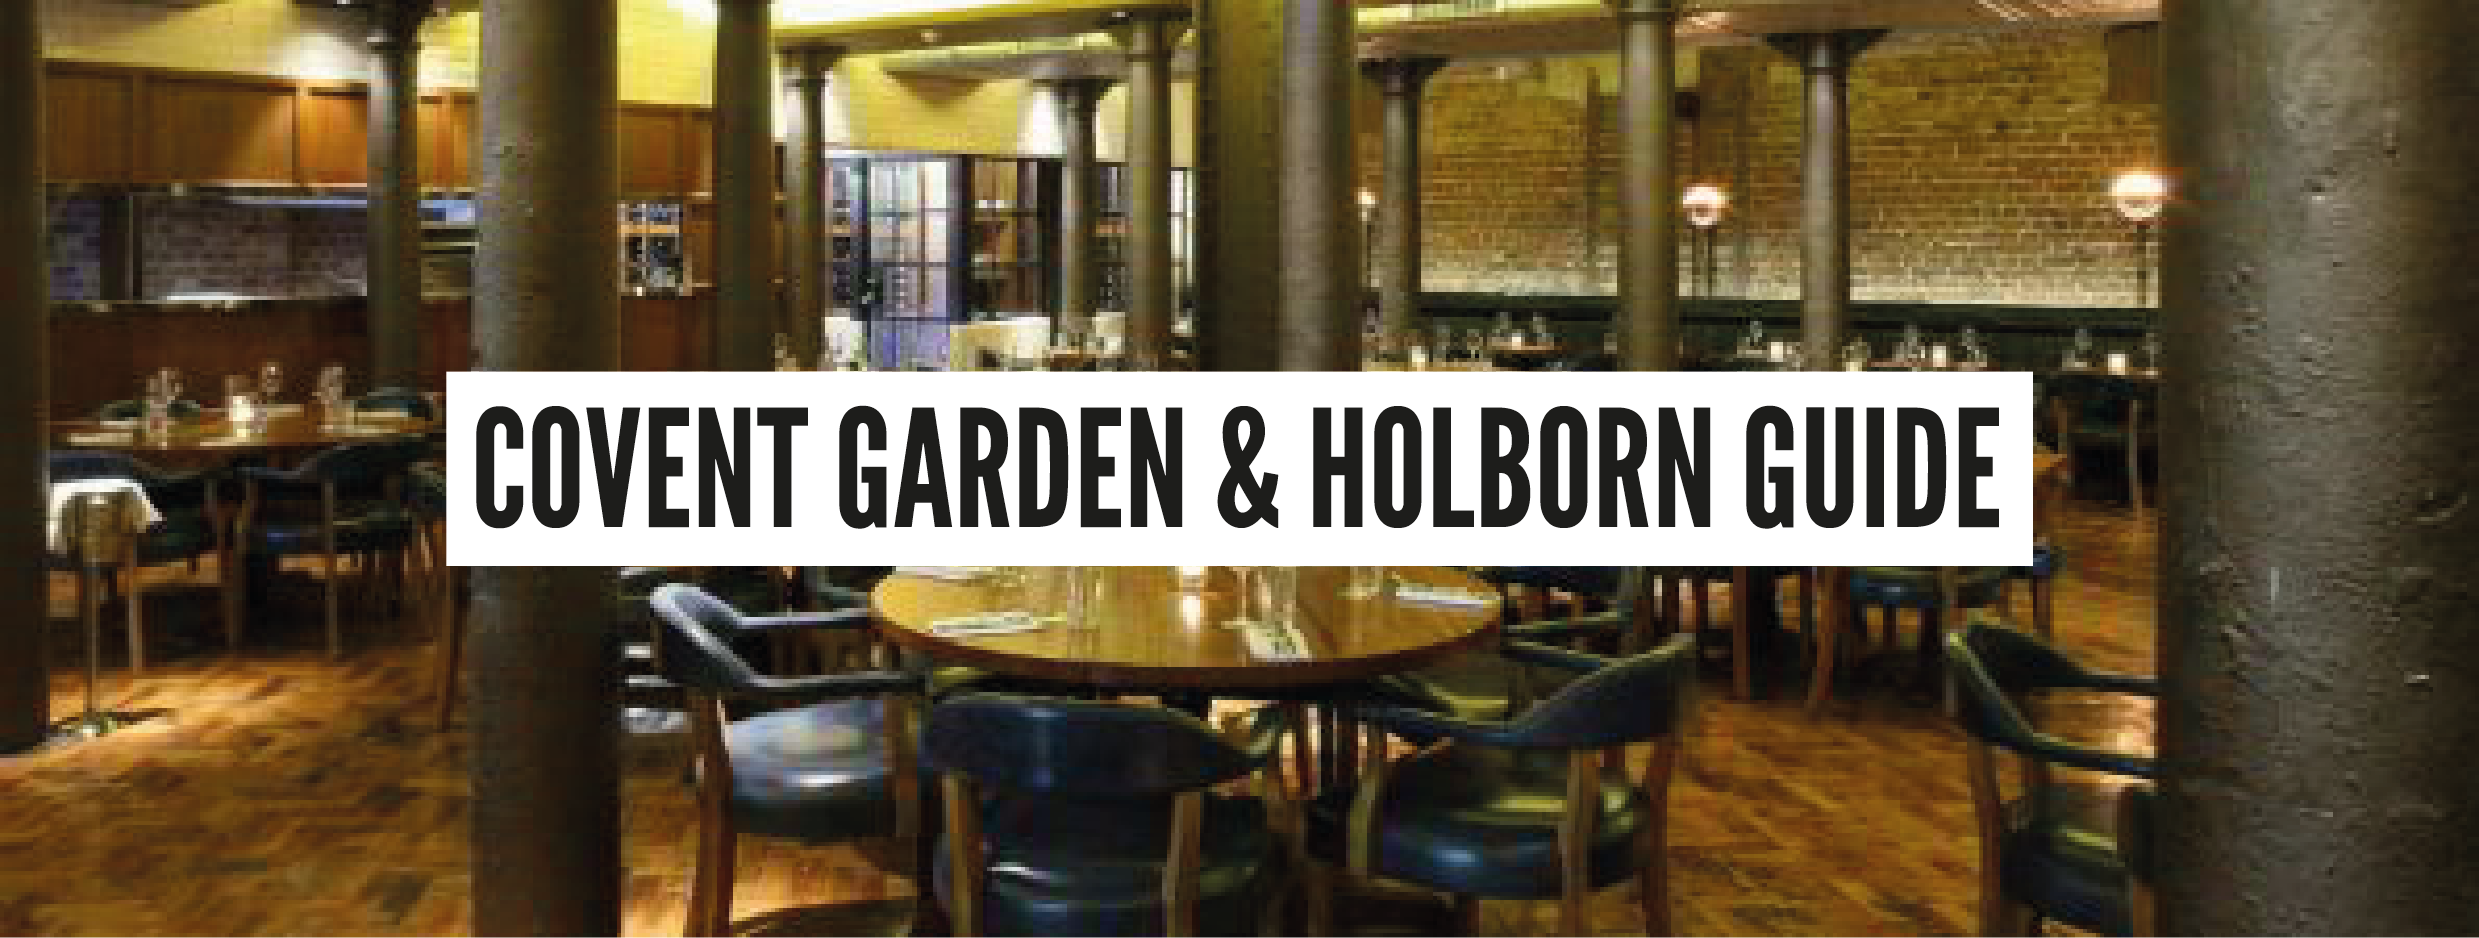 London Neighbourhood Guides - Covent Garden & Holborn